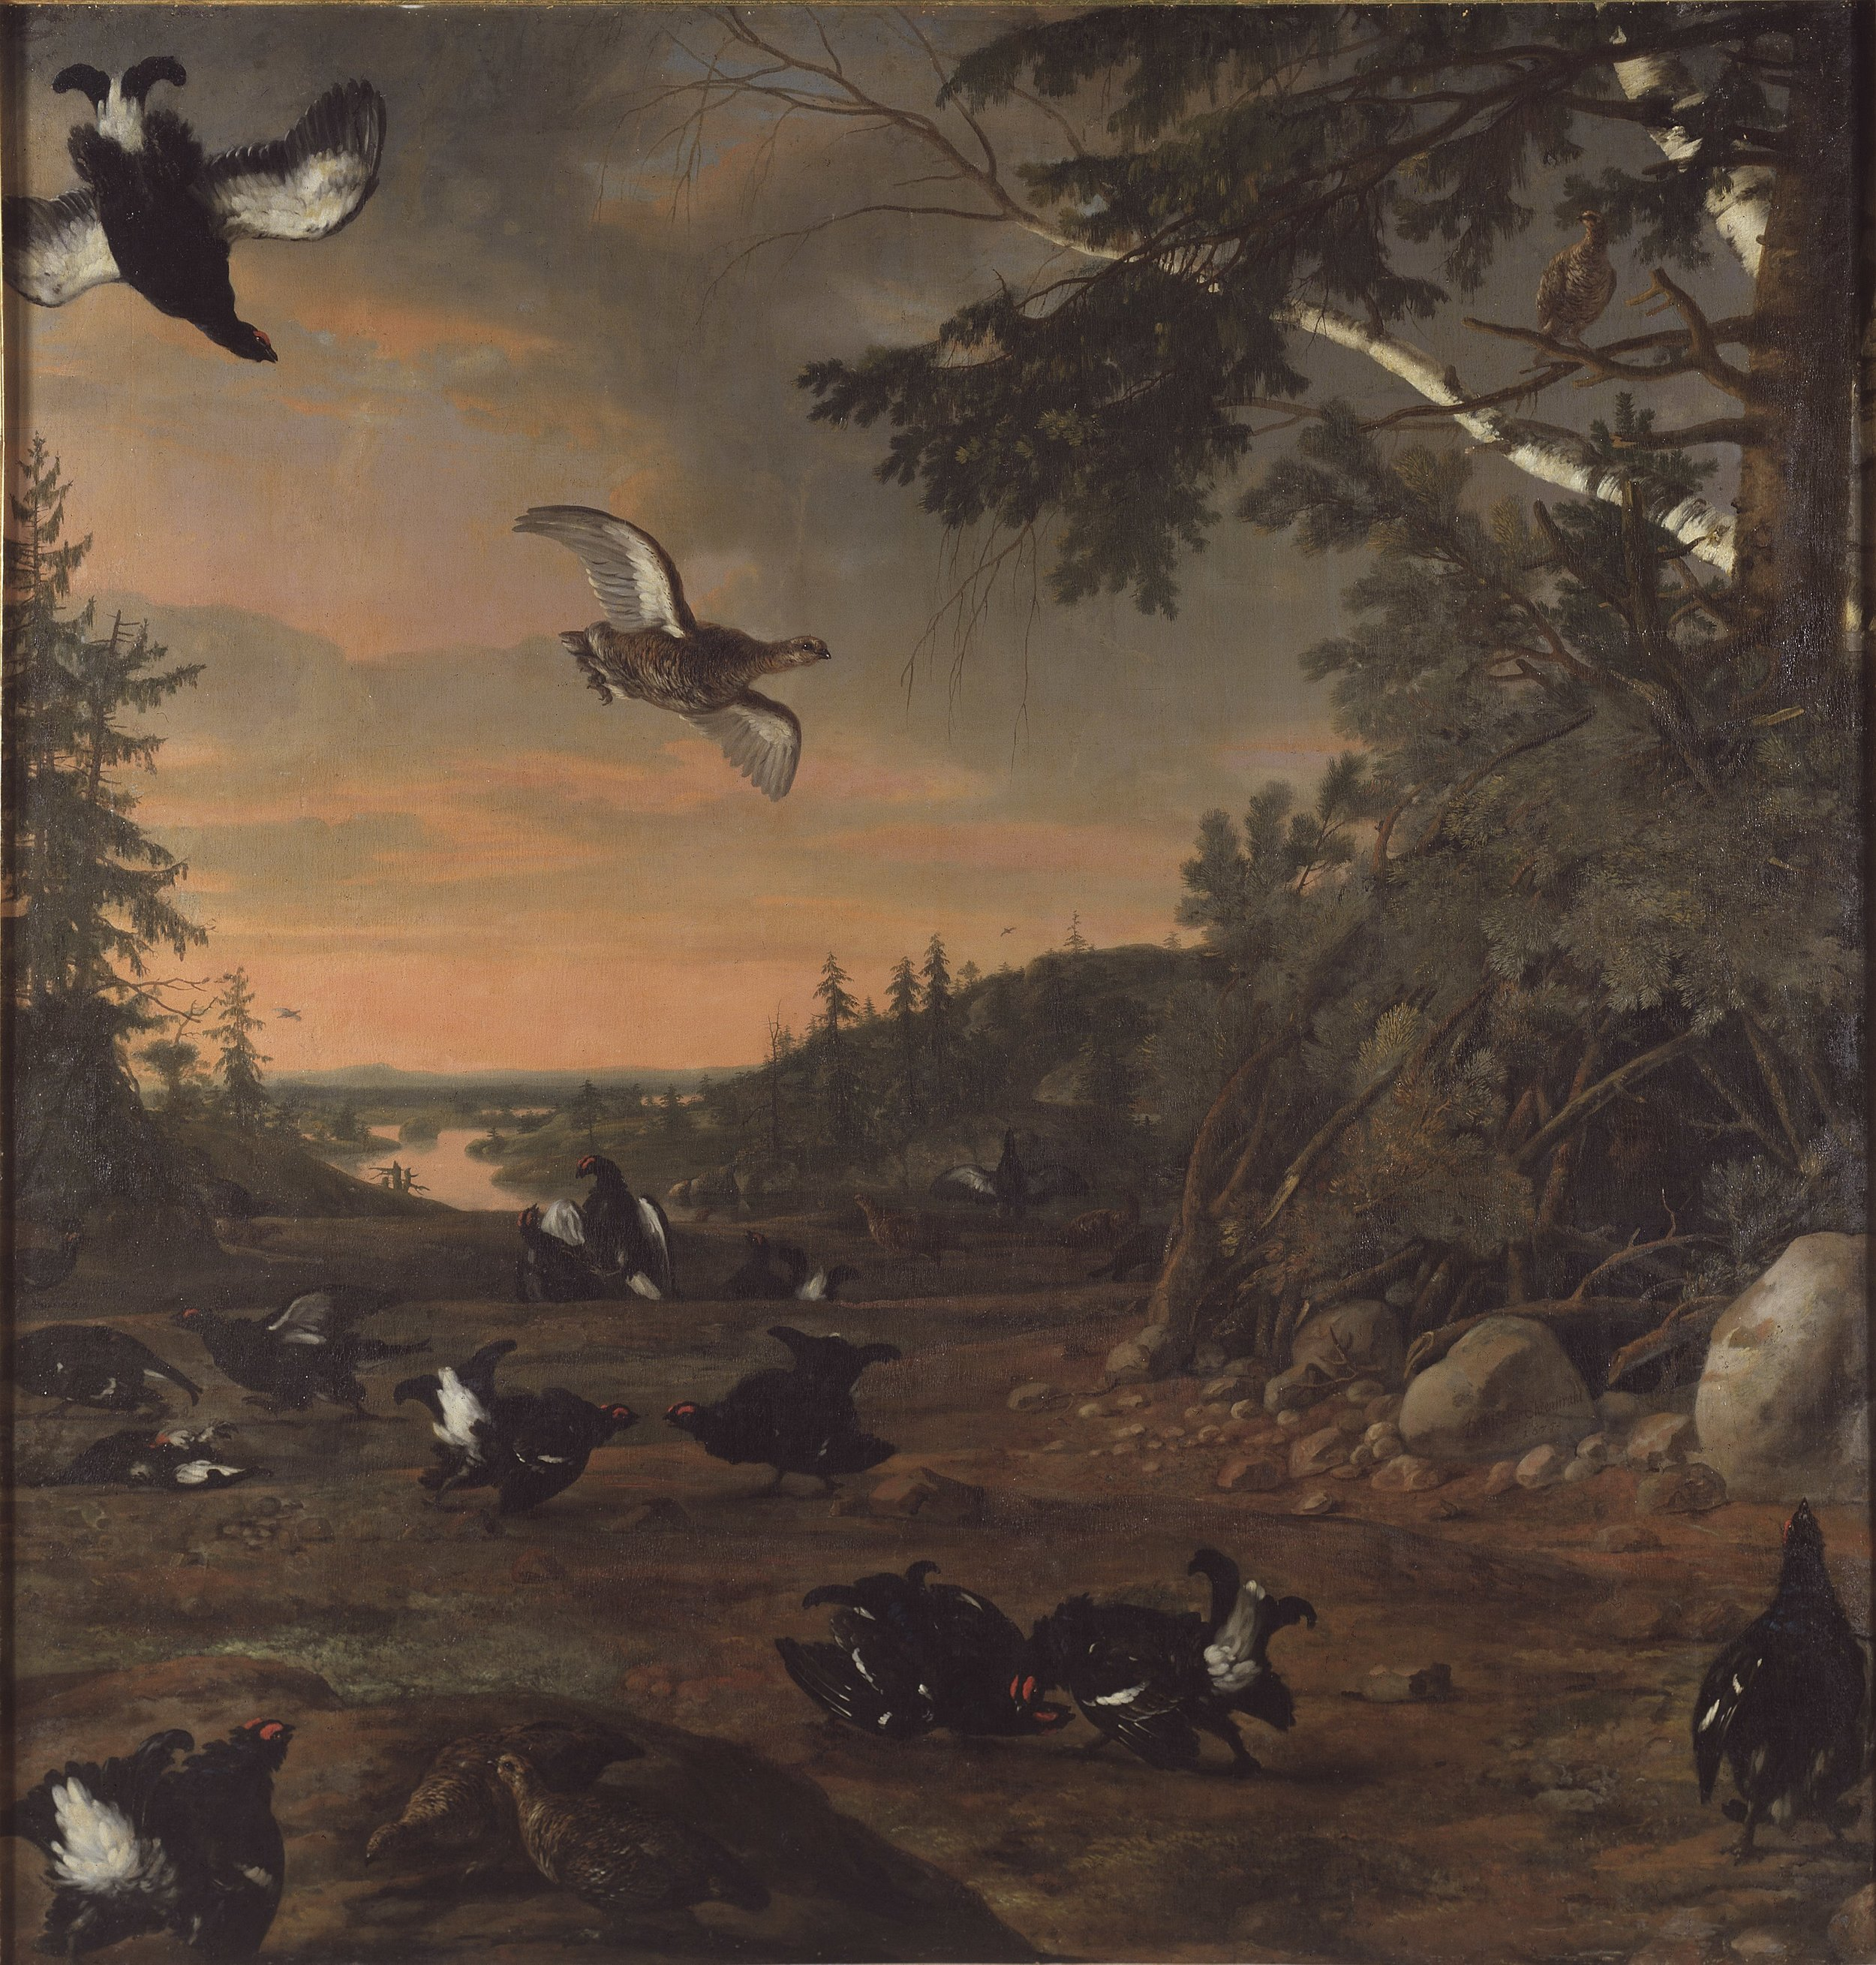 David Klöcker Ehrenstrahl, Black Cocks at Ground, 1675, Nationalmuseu, photograpgher Erik Cornelius.jpg